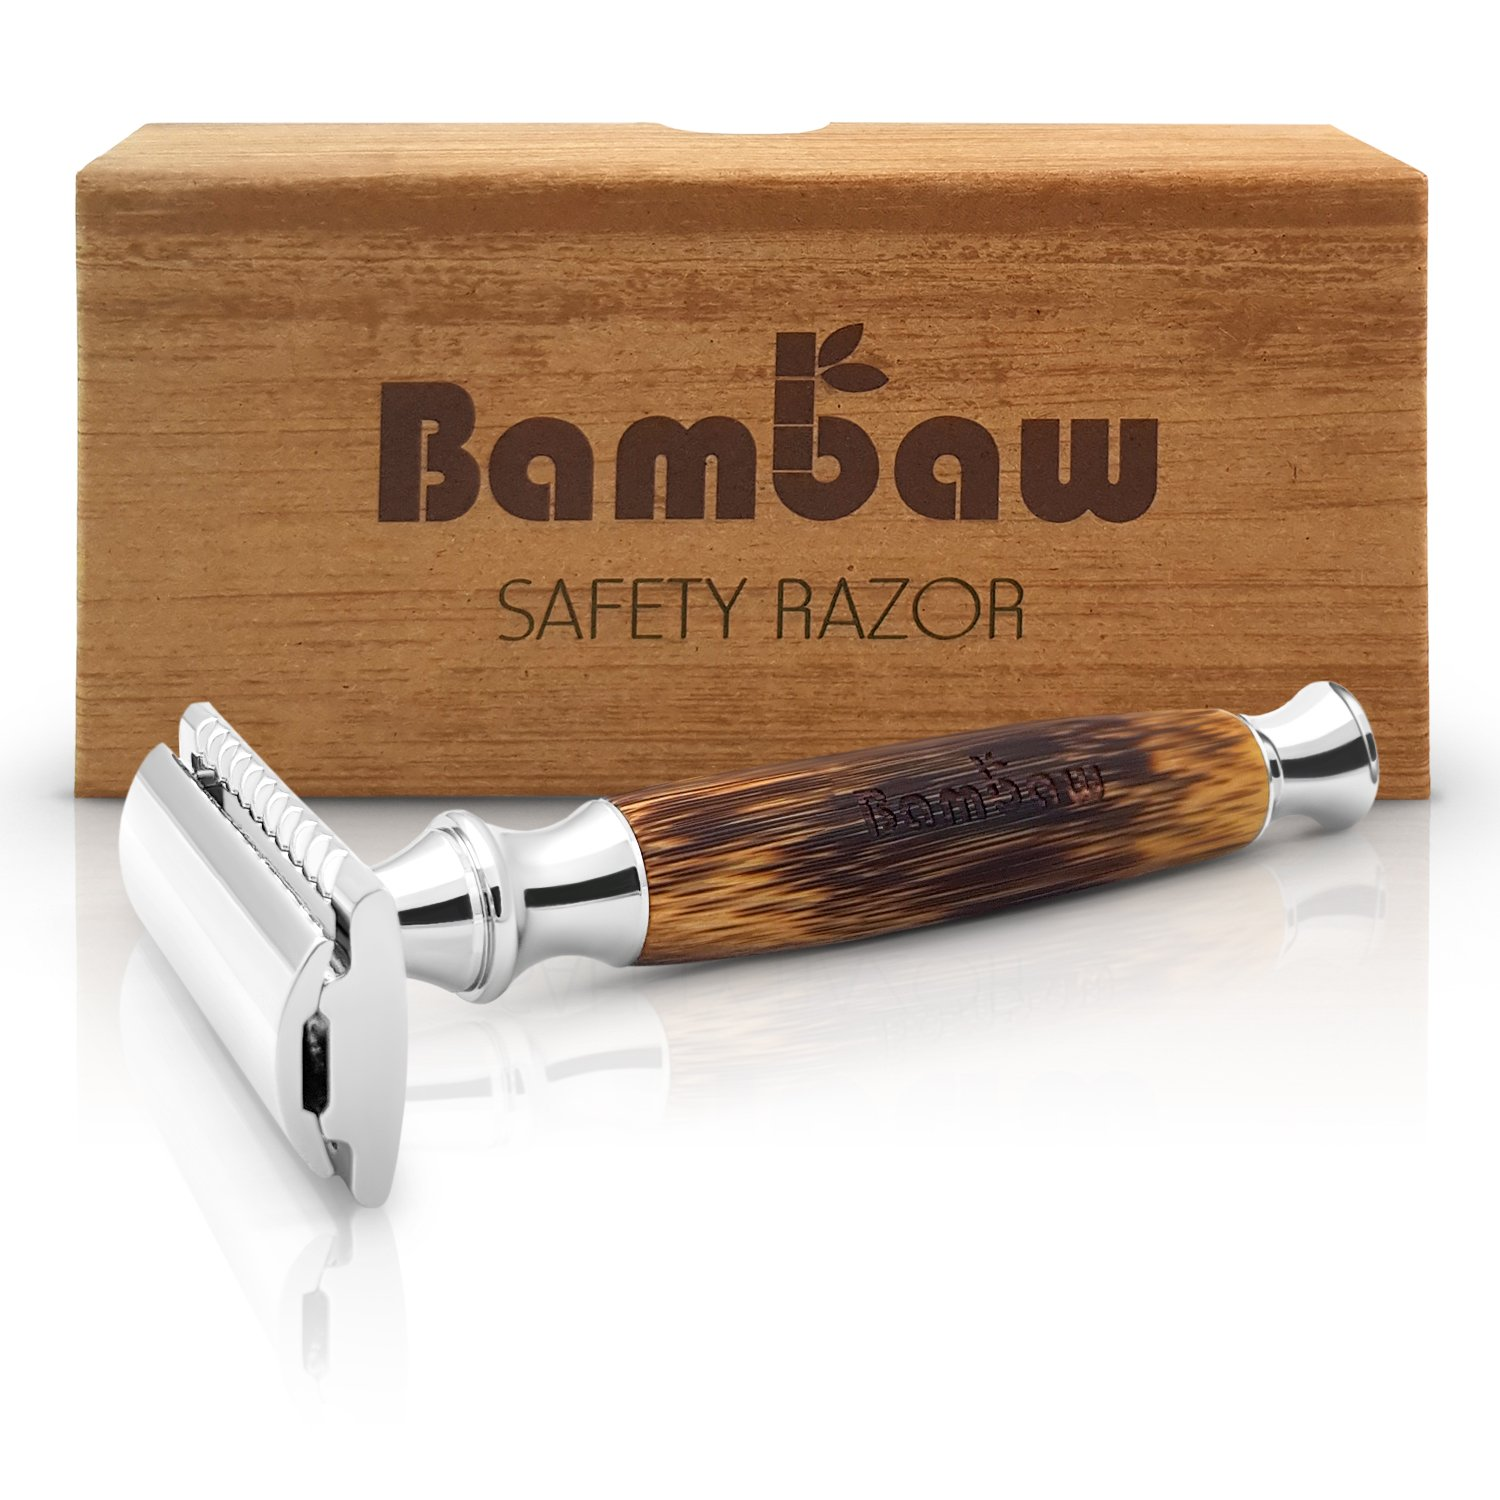 Double Edge Safety Razor with Long Natural Bamboo Handle | The Perfect Shave | High Quality | Sustainable and Durable | Environmentally Friendly |Fits All Double Edge Razor Blades | Bambaw product image